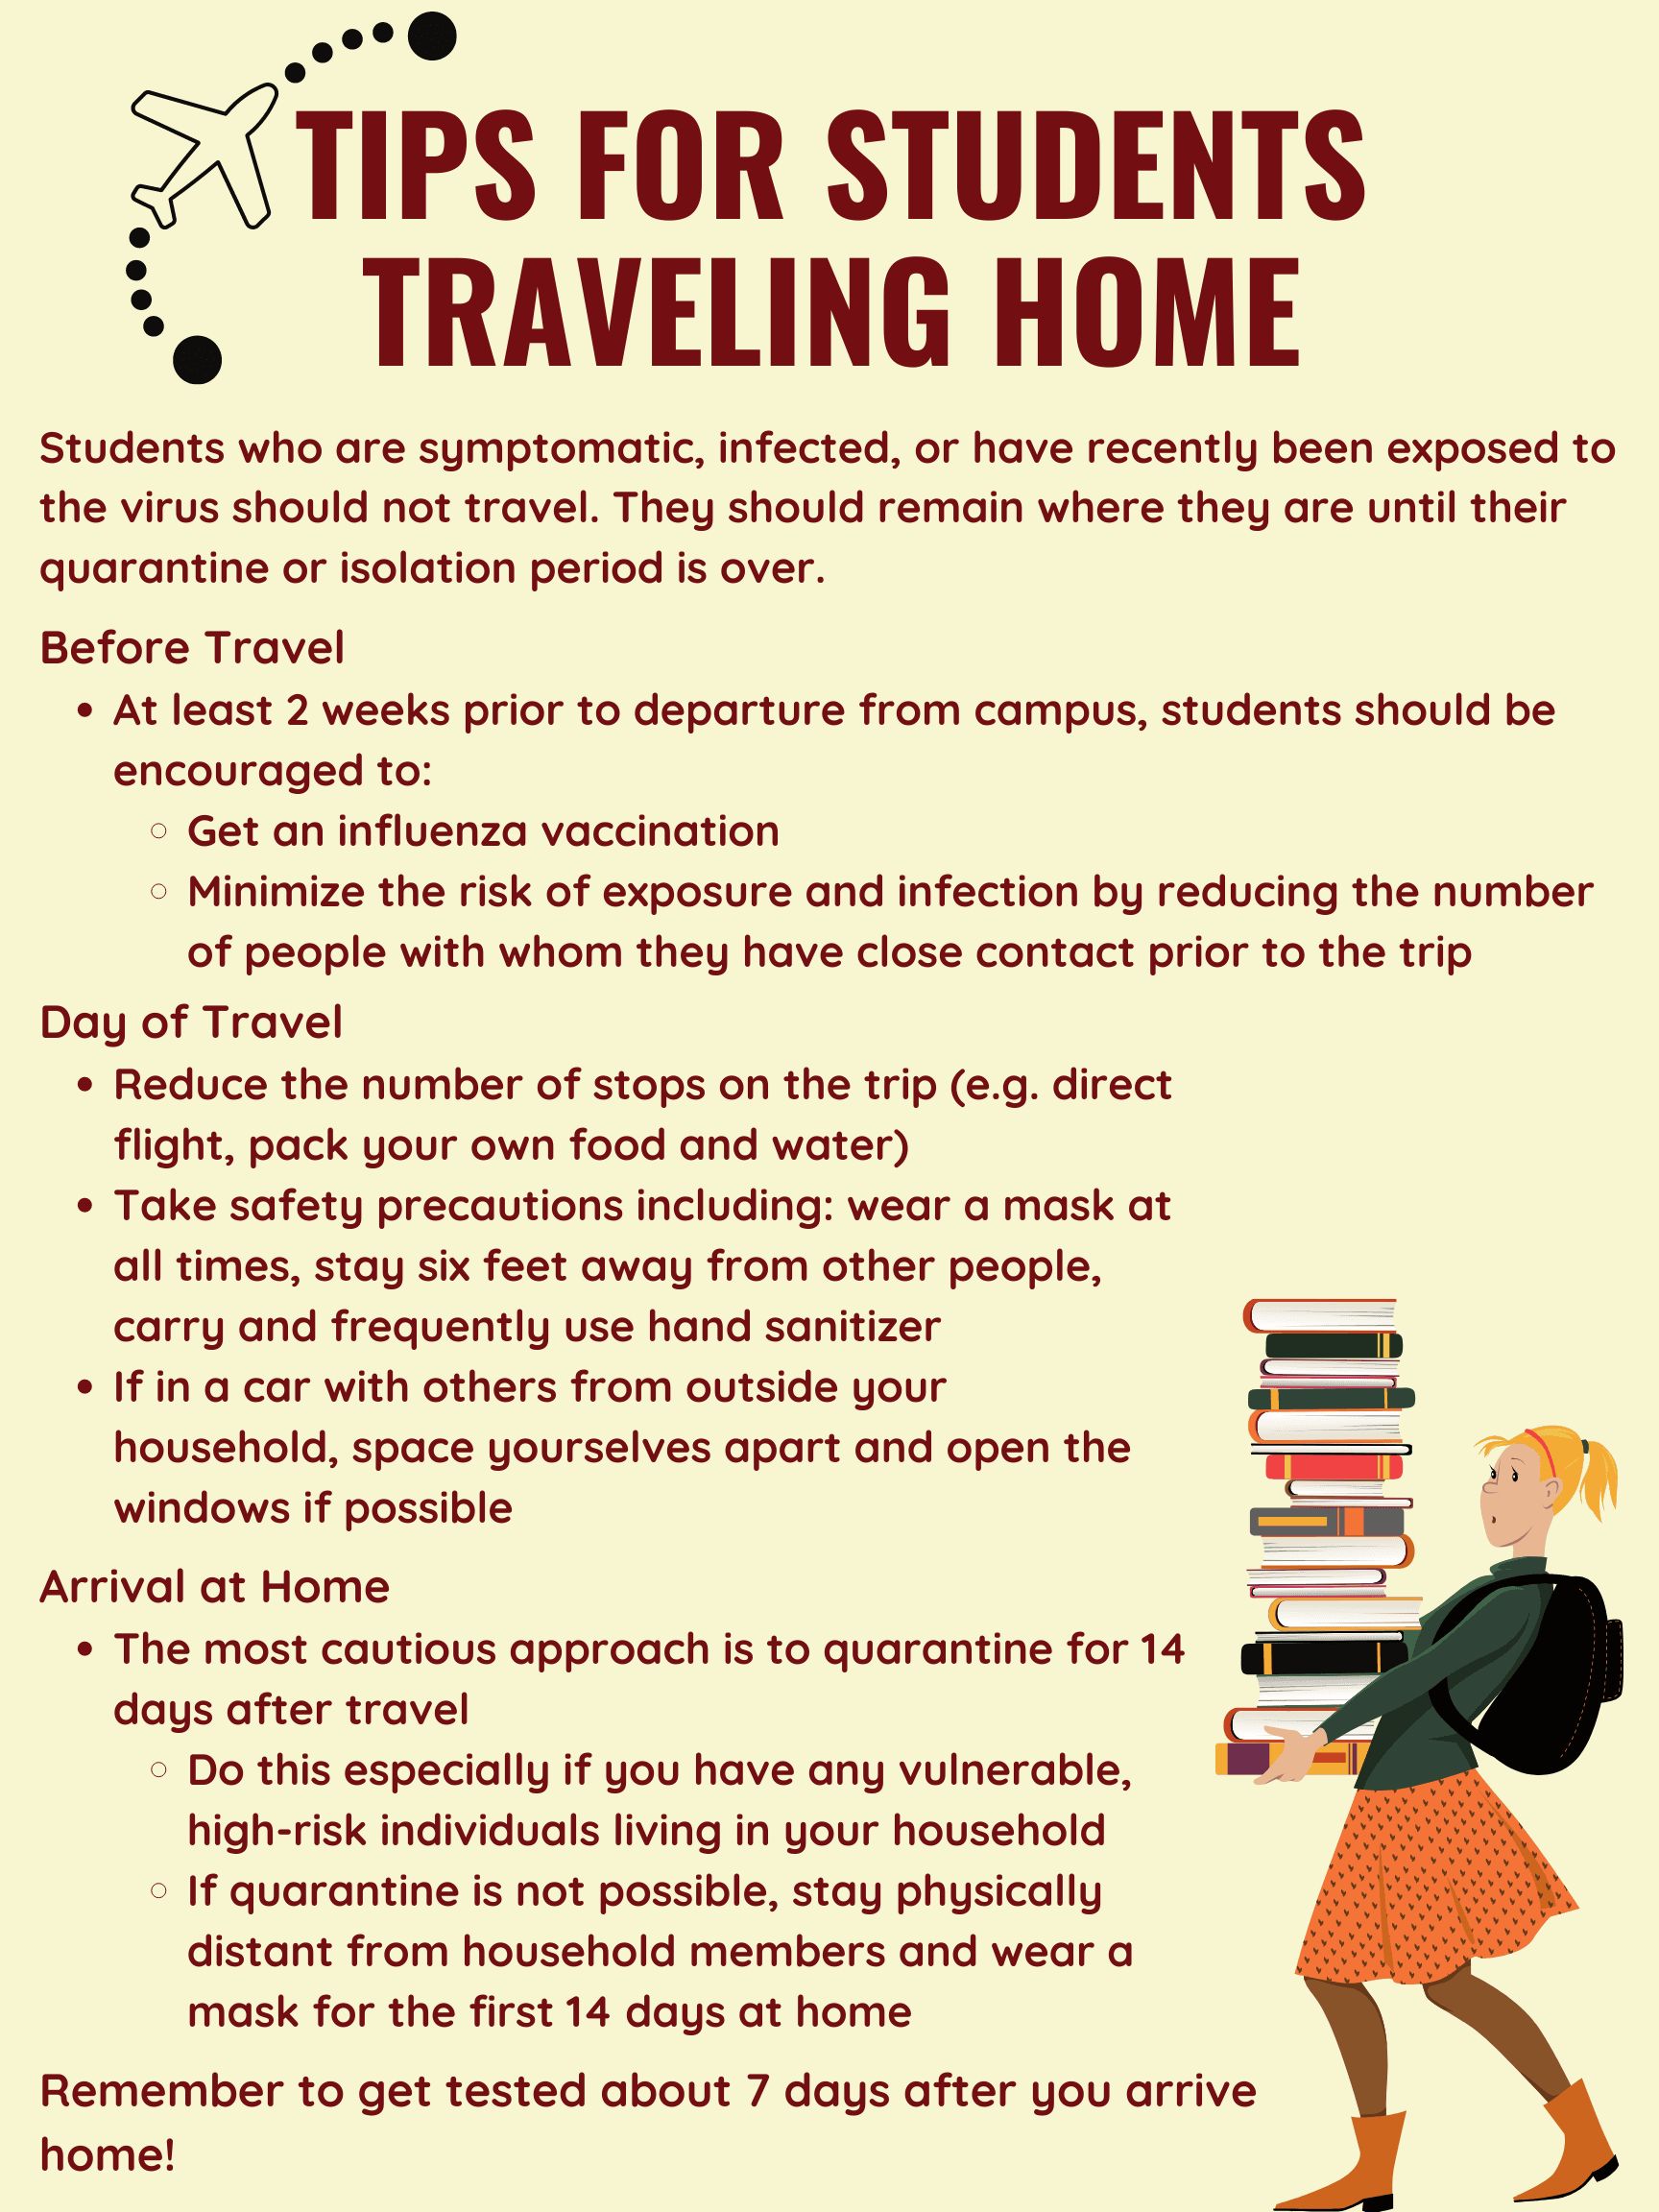 Students Traveling Home